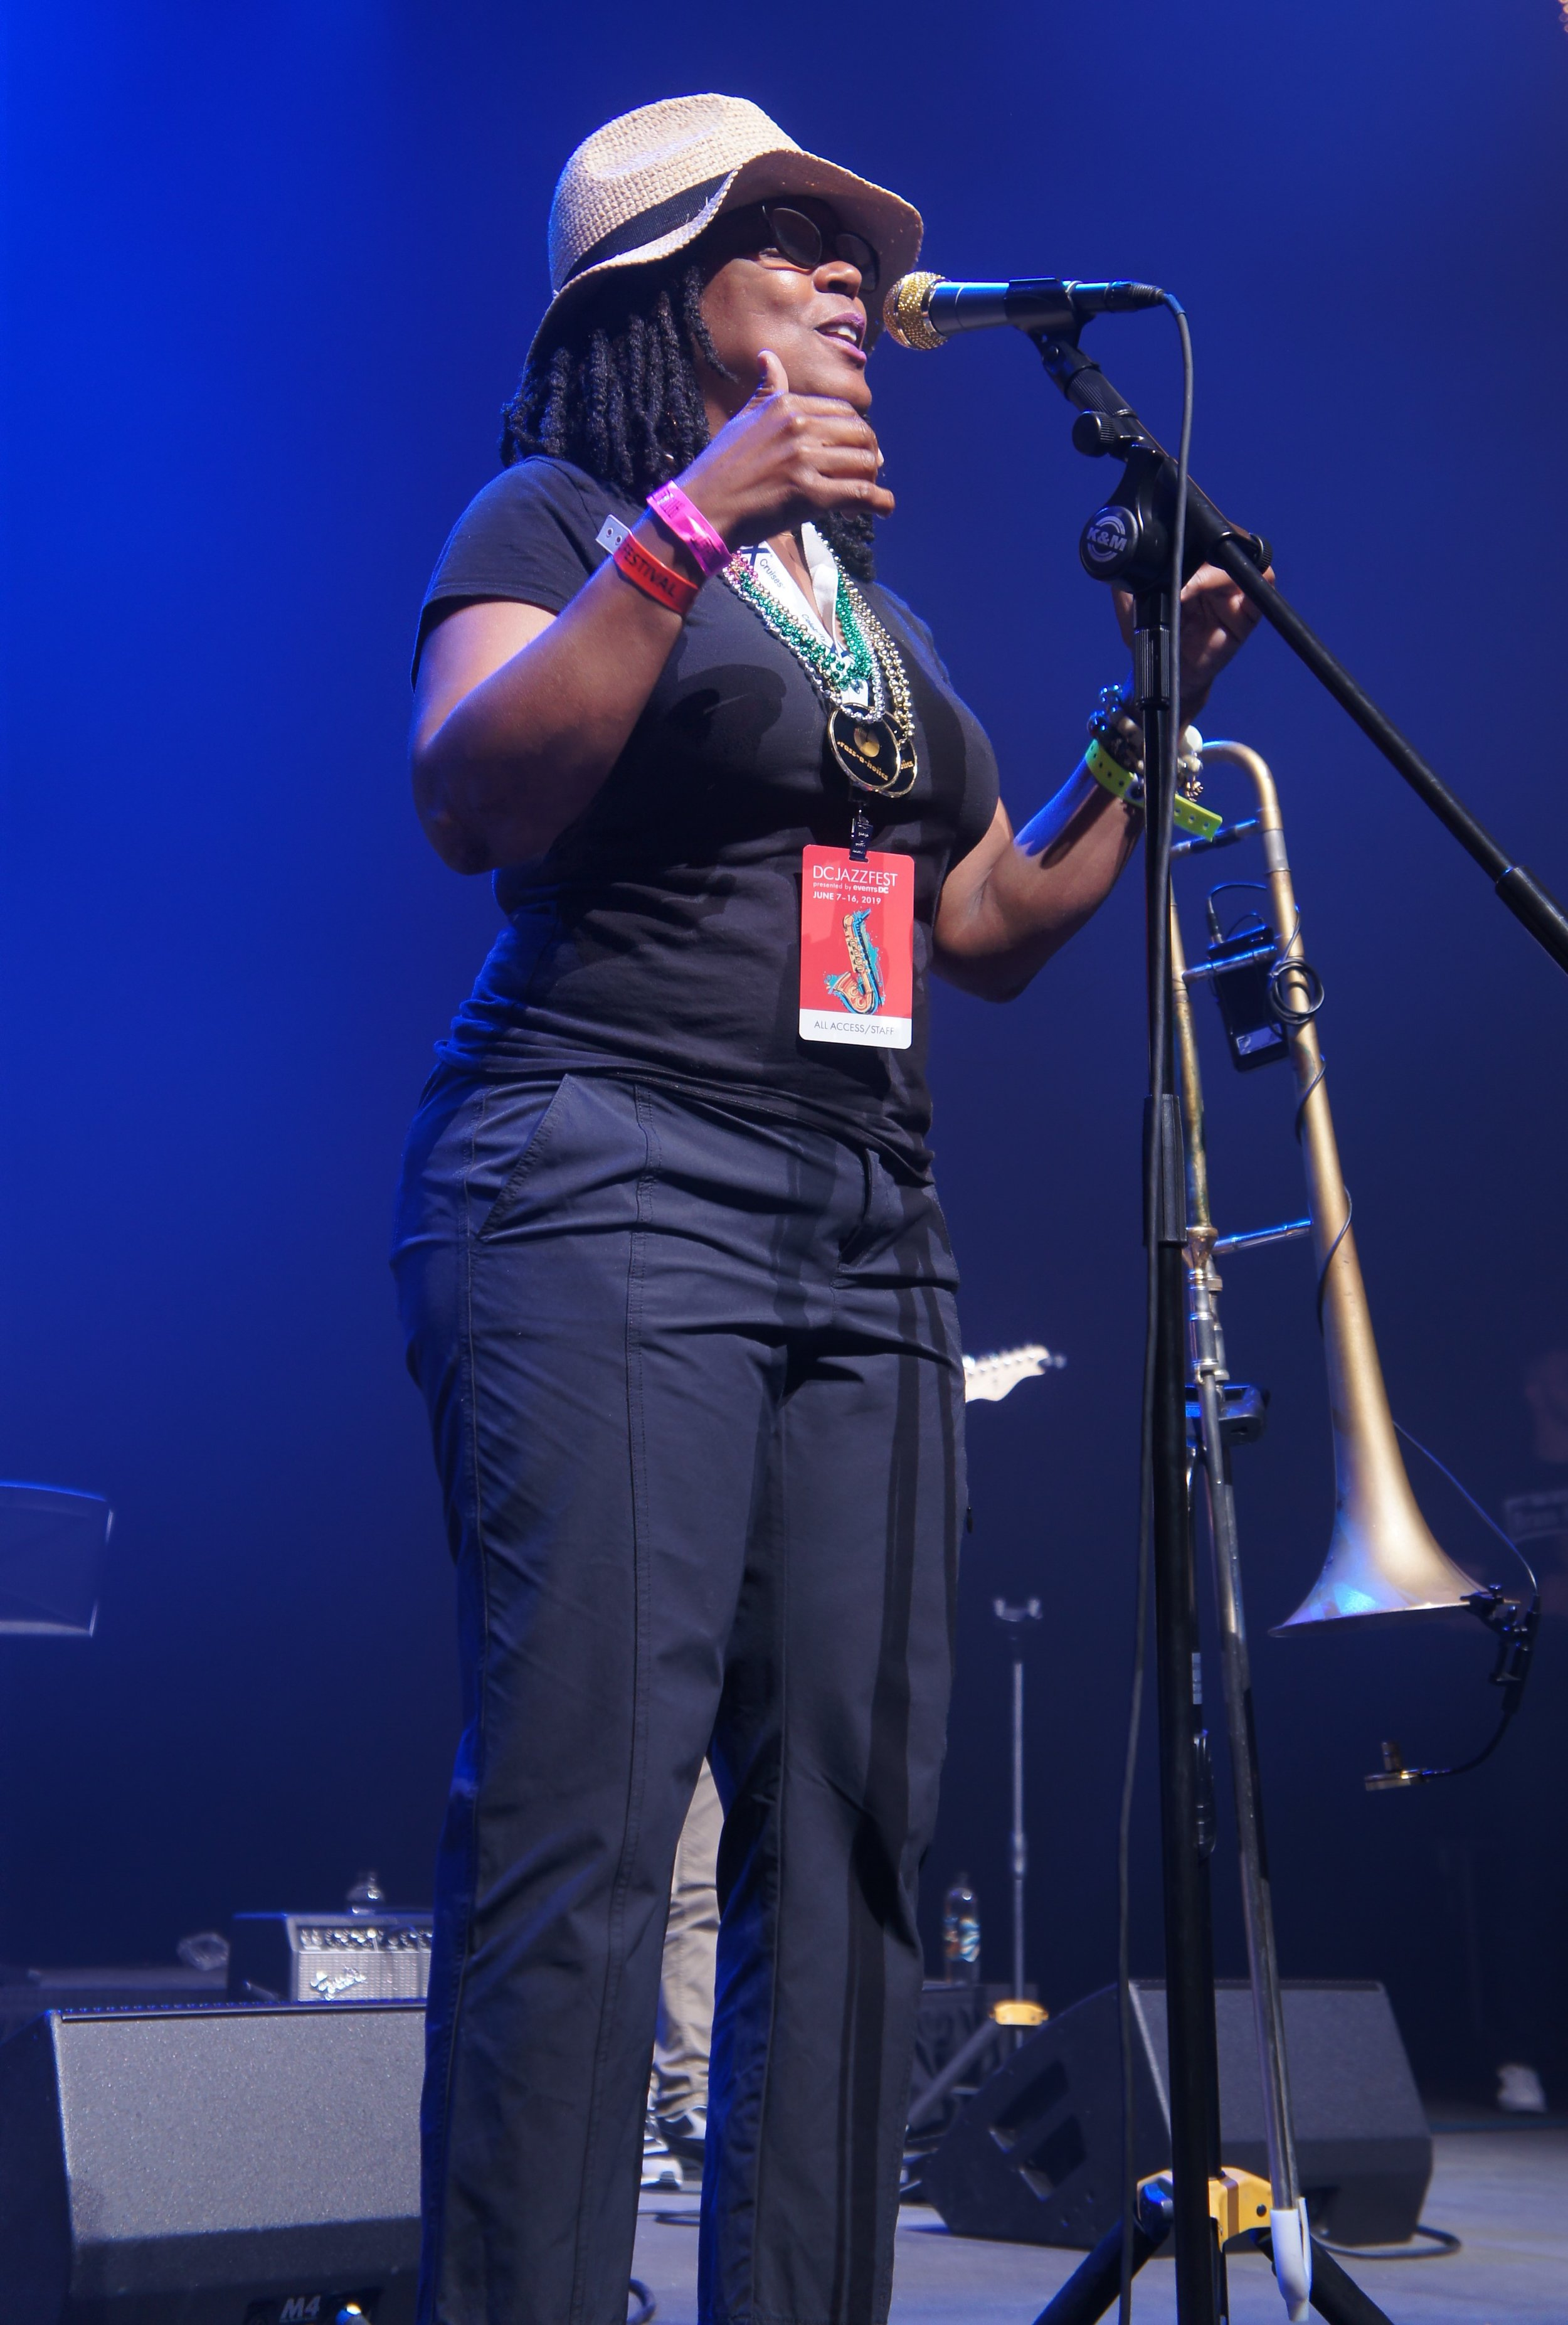 DC Jazz Festival's Executive Director, Sunny Sumter, introducing the Brass-A-Holics at The Anthem 6/15/19 (photo by Bridget Arnwine)